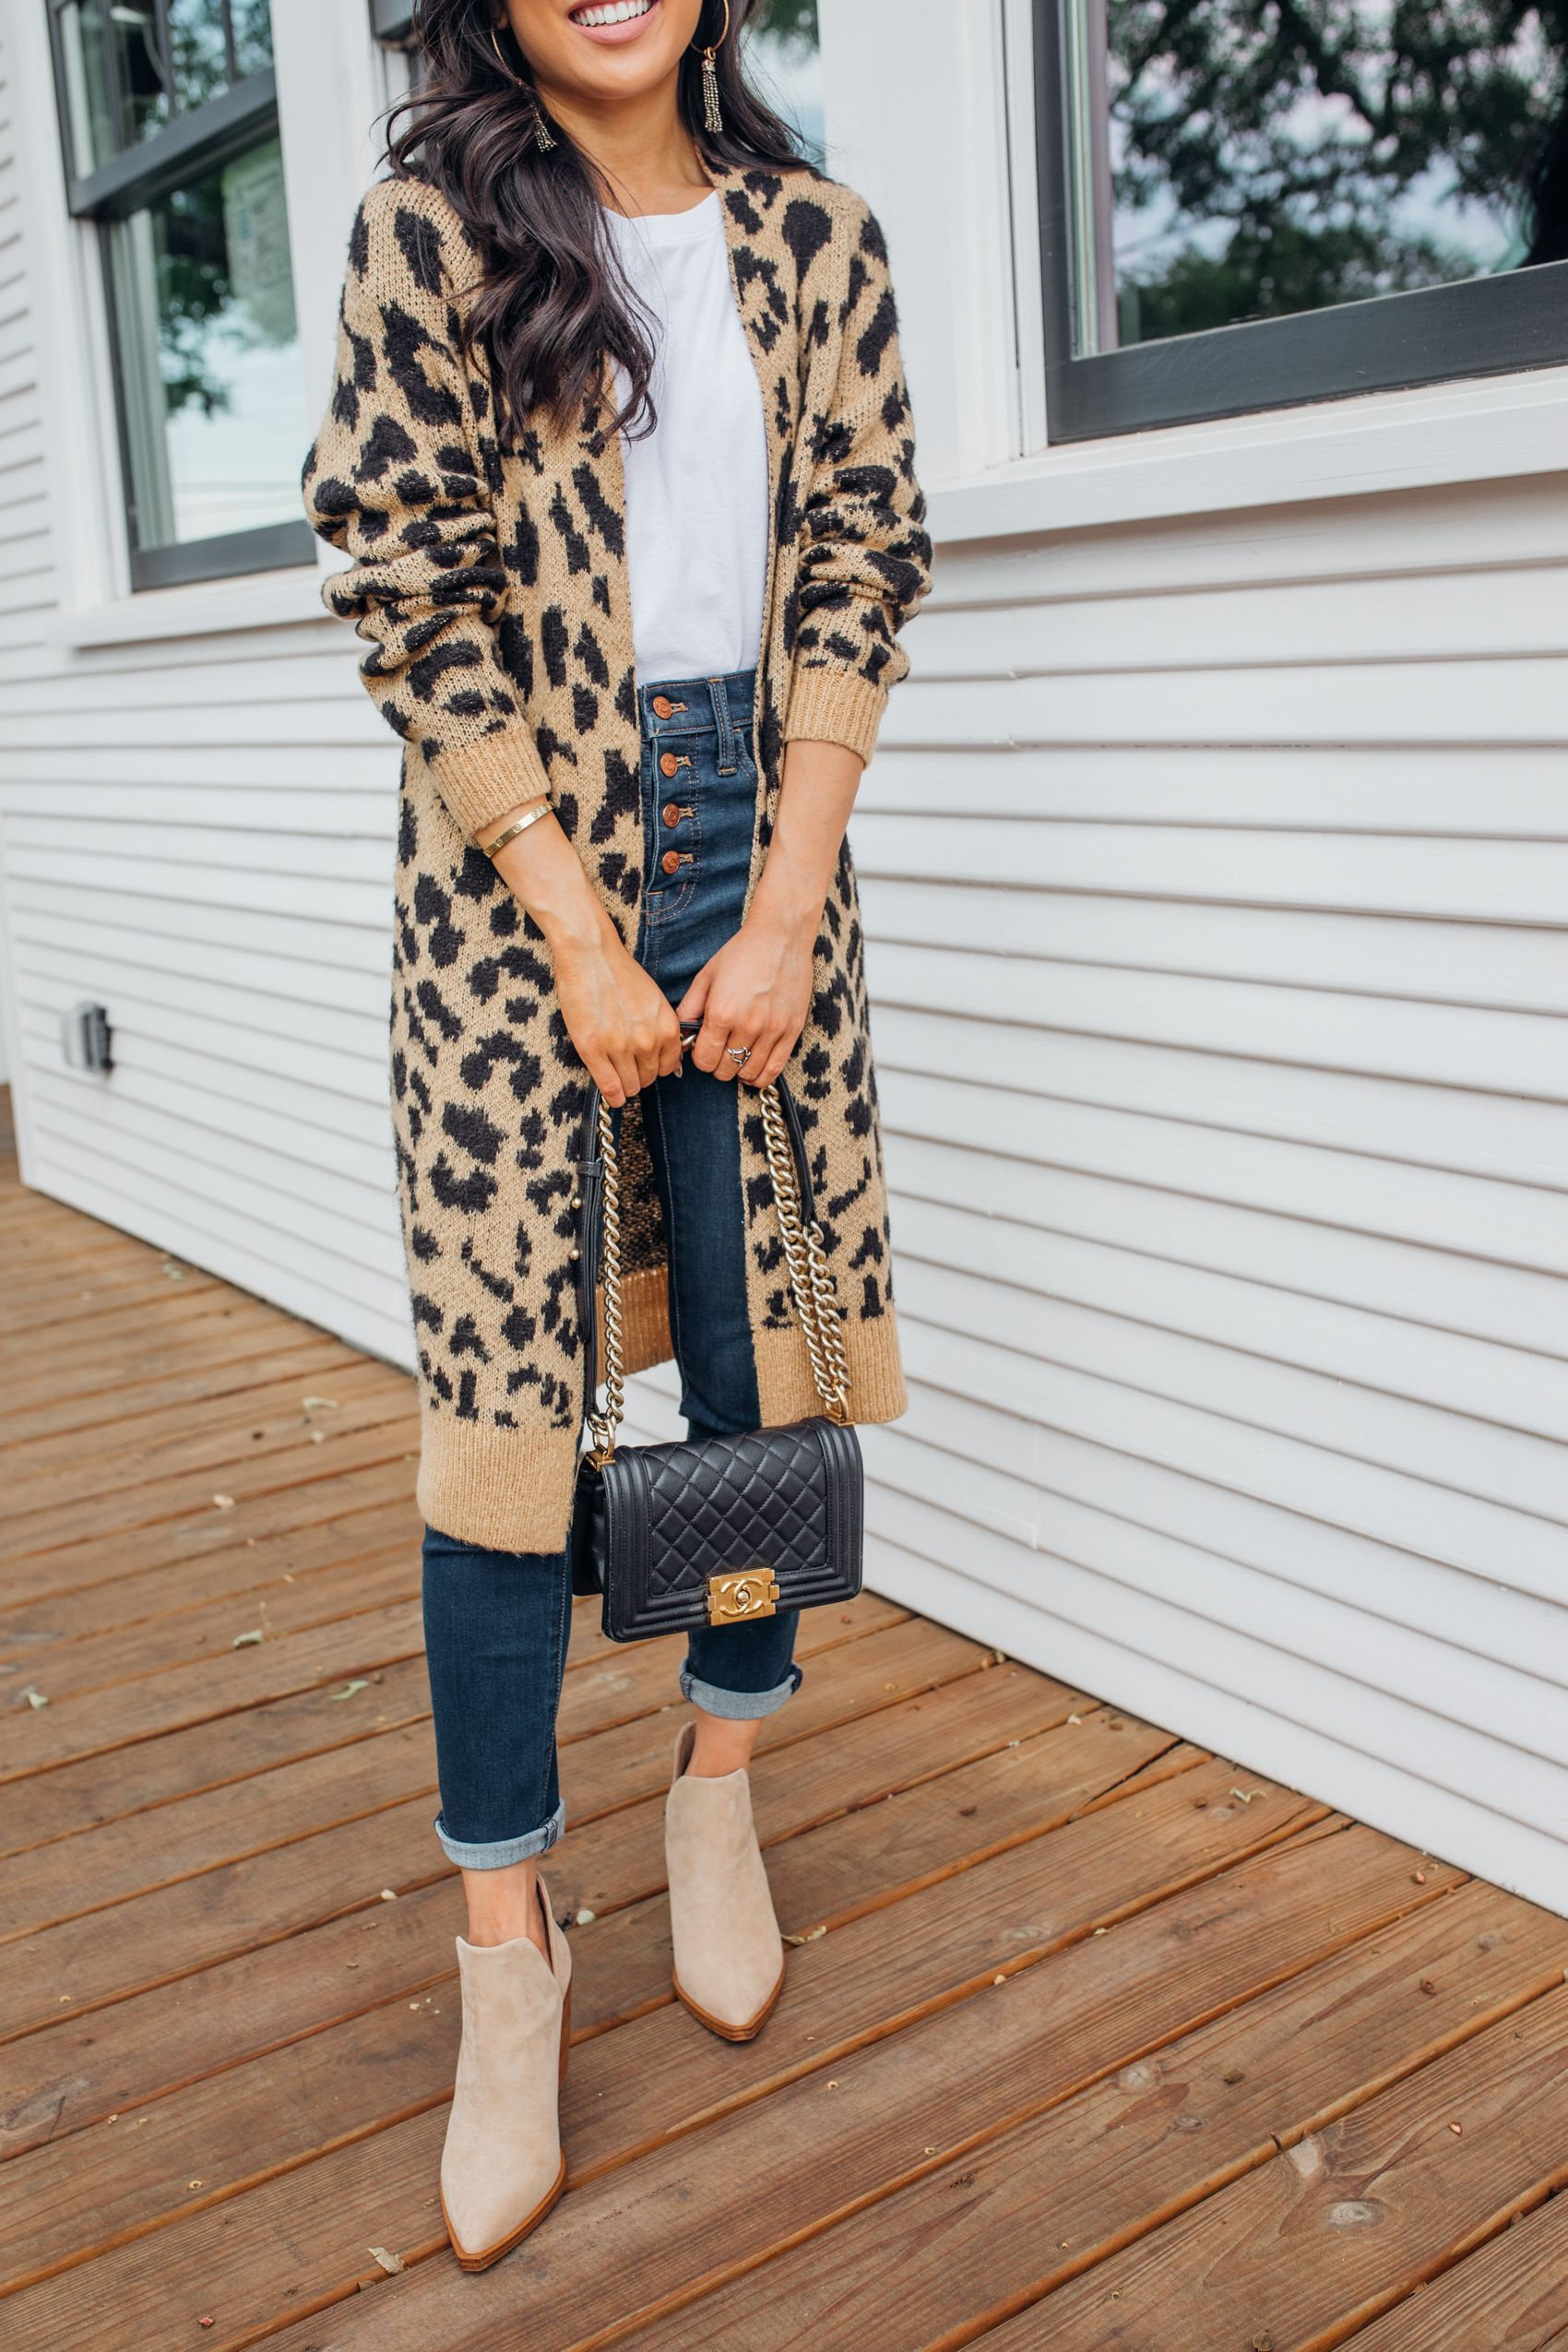 Leopard cardigan outfit inspo for fall with high-waisted jeans